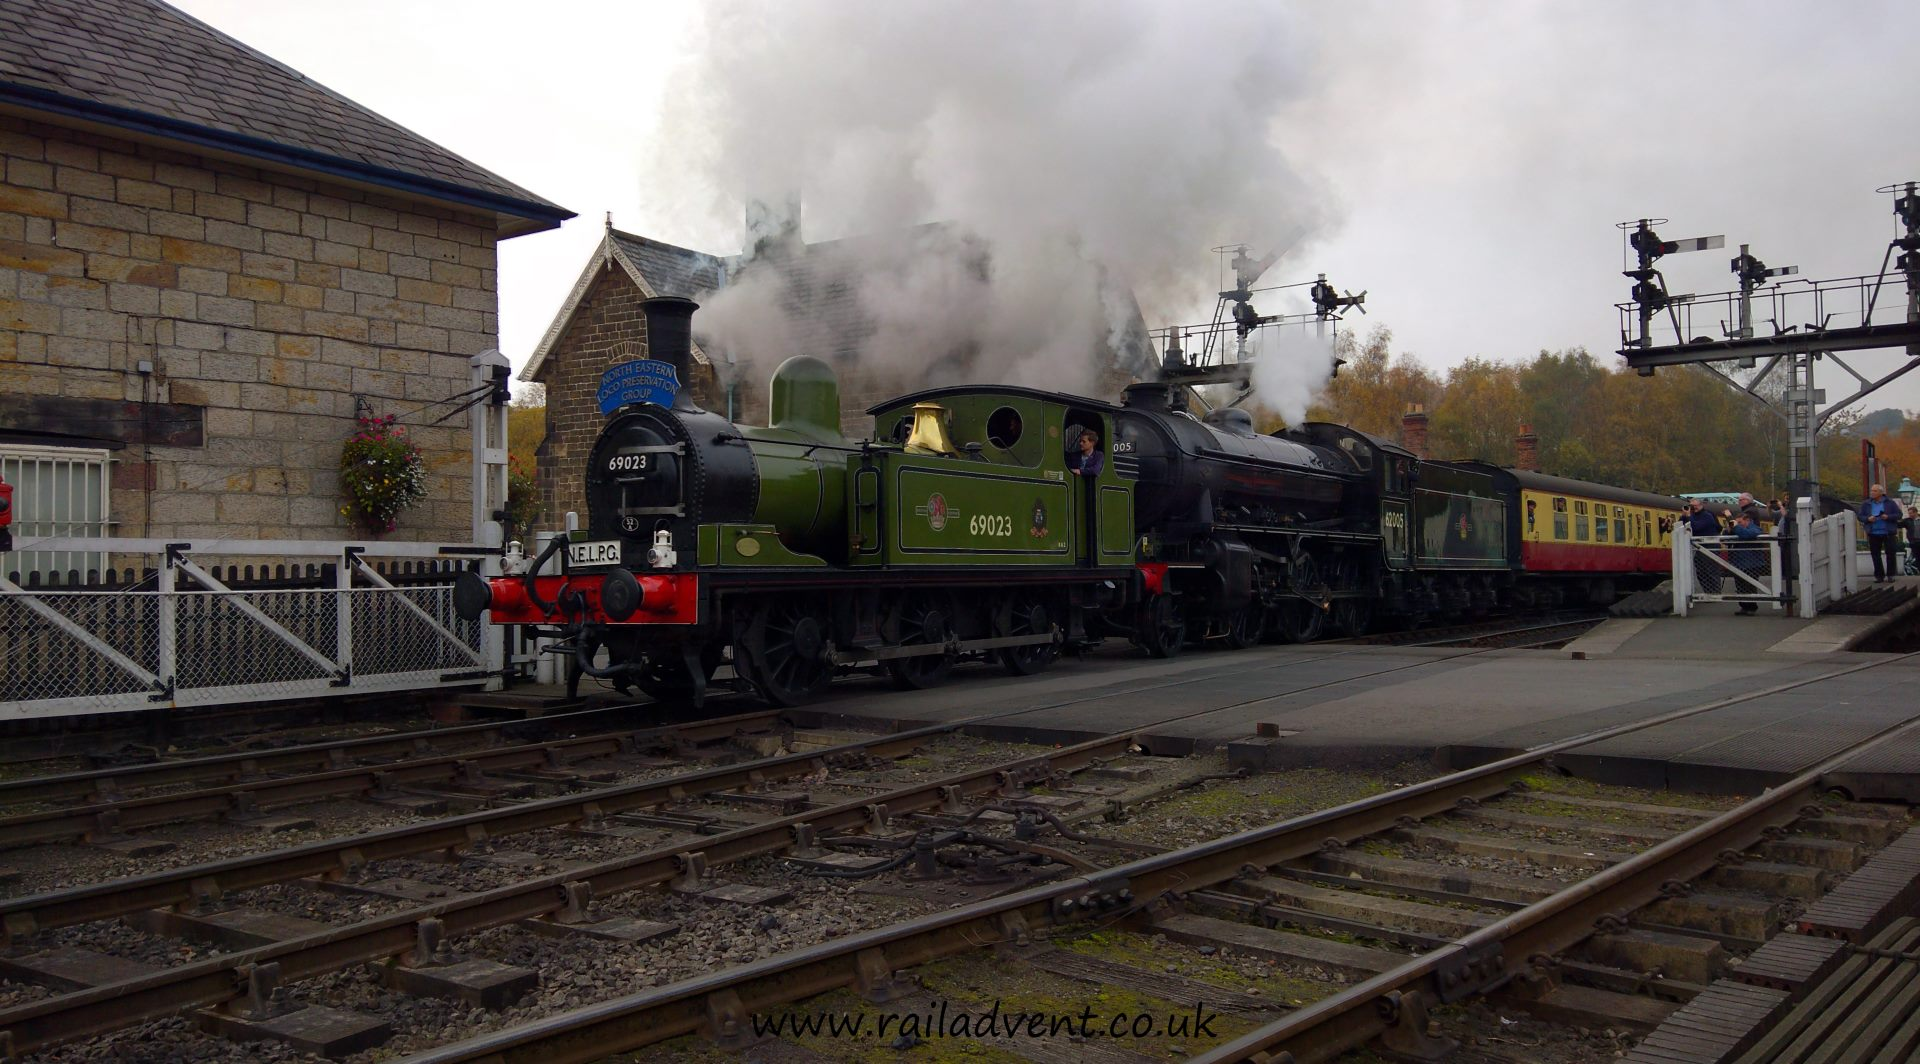 No. 69023 'Joem' and 62005 depart Grosmont for Pickering